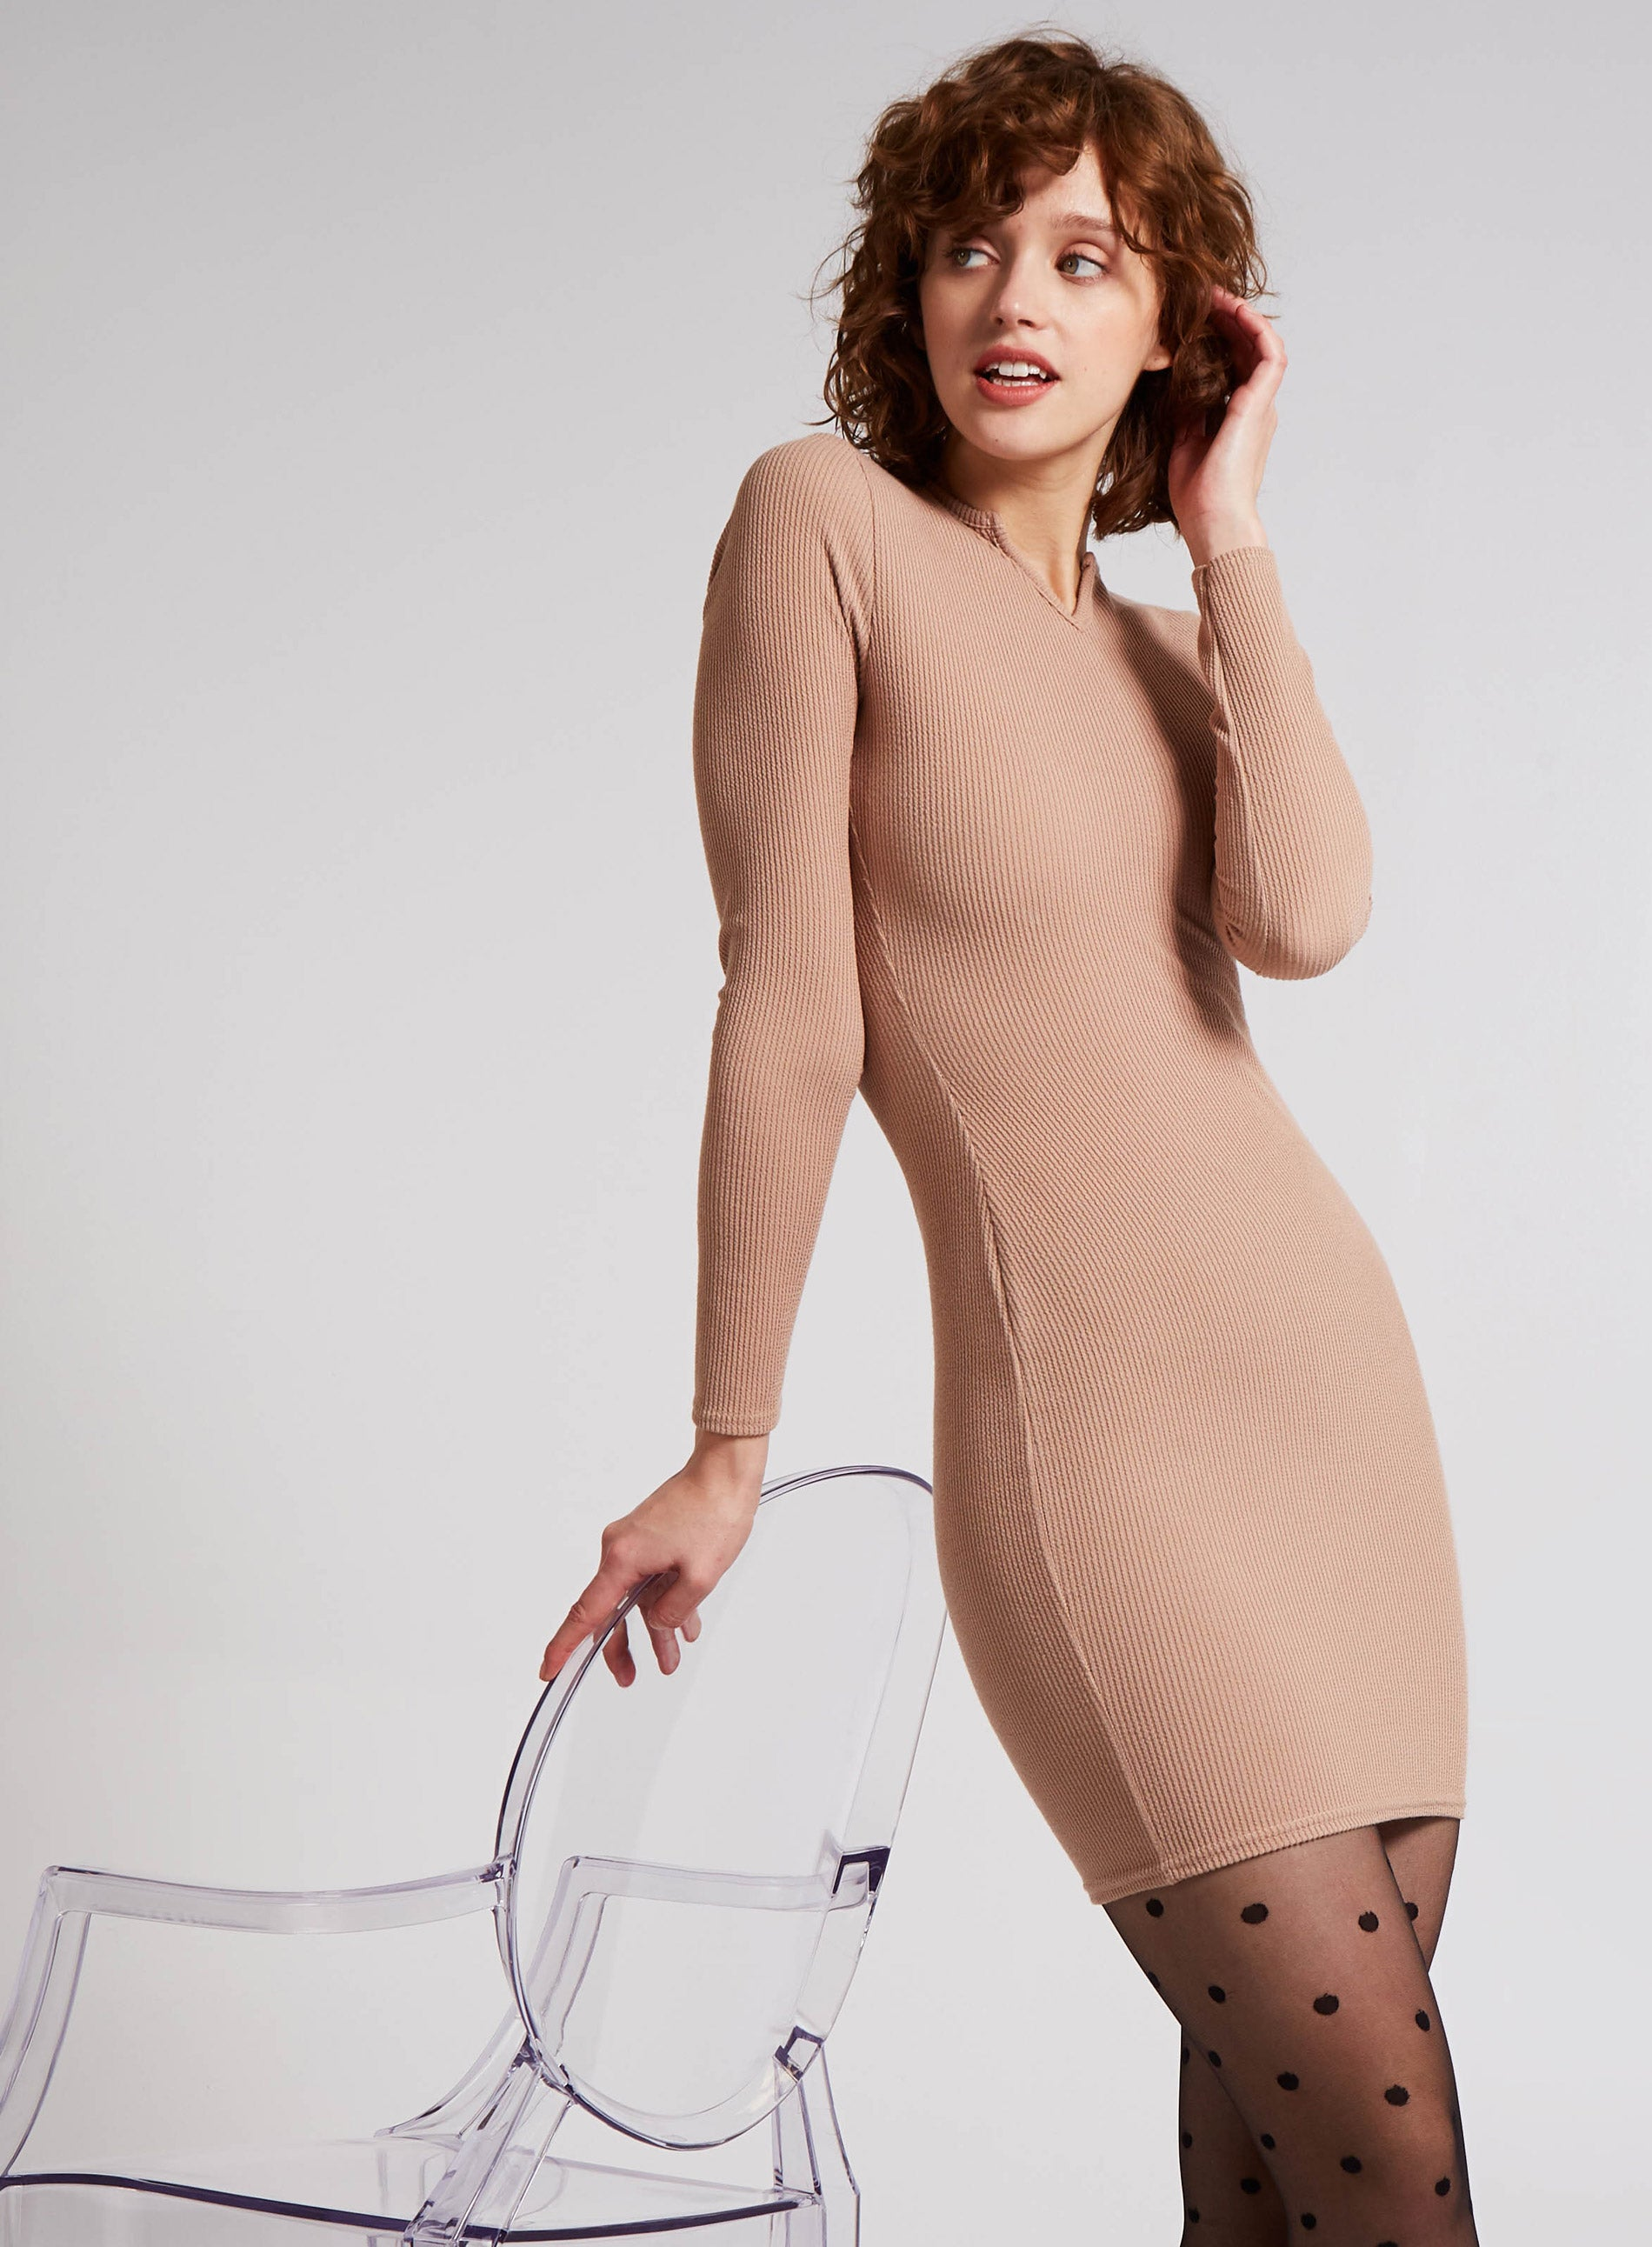 MOLLIFIED - Notch Neckline Long Sleeve Dress